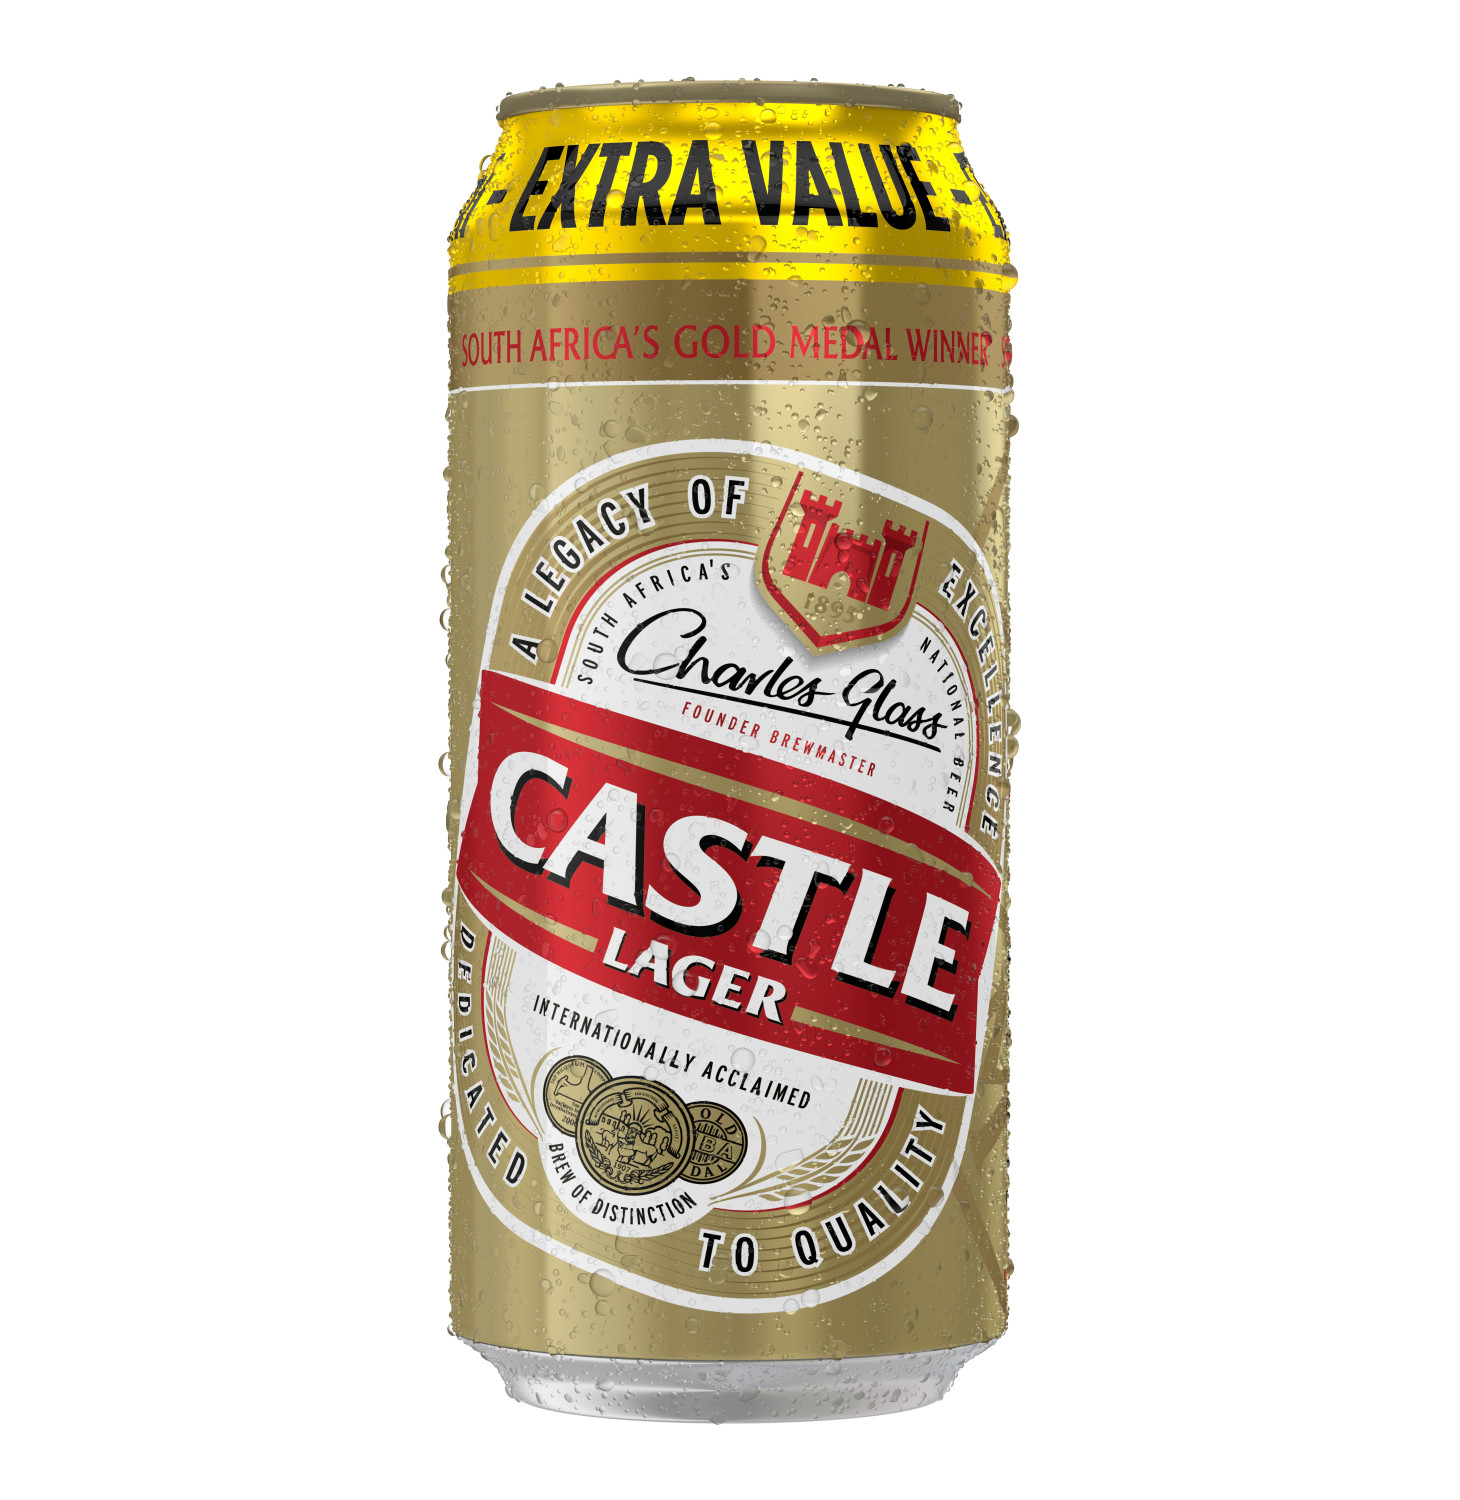 CASTLE LAGER BEER CAN 500ML